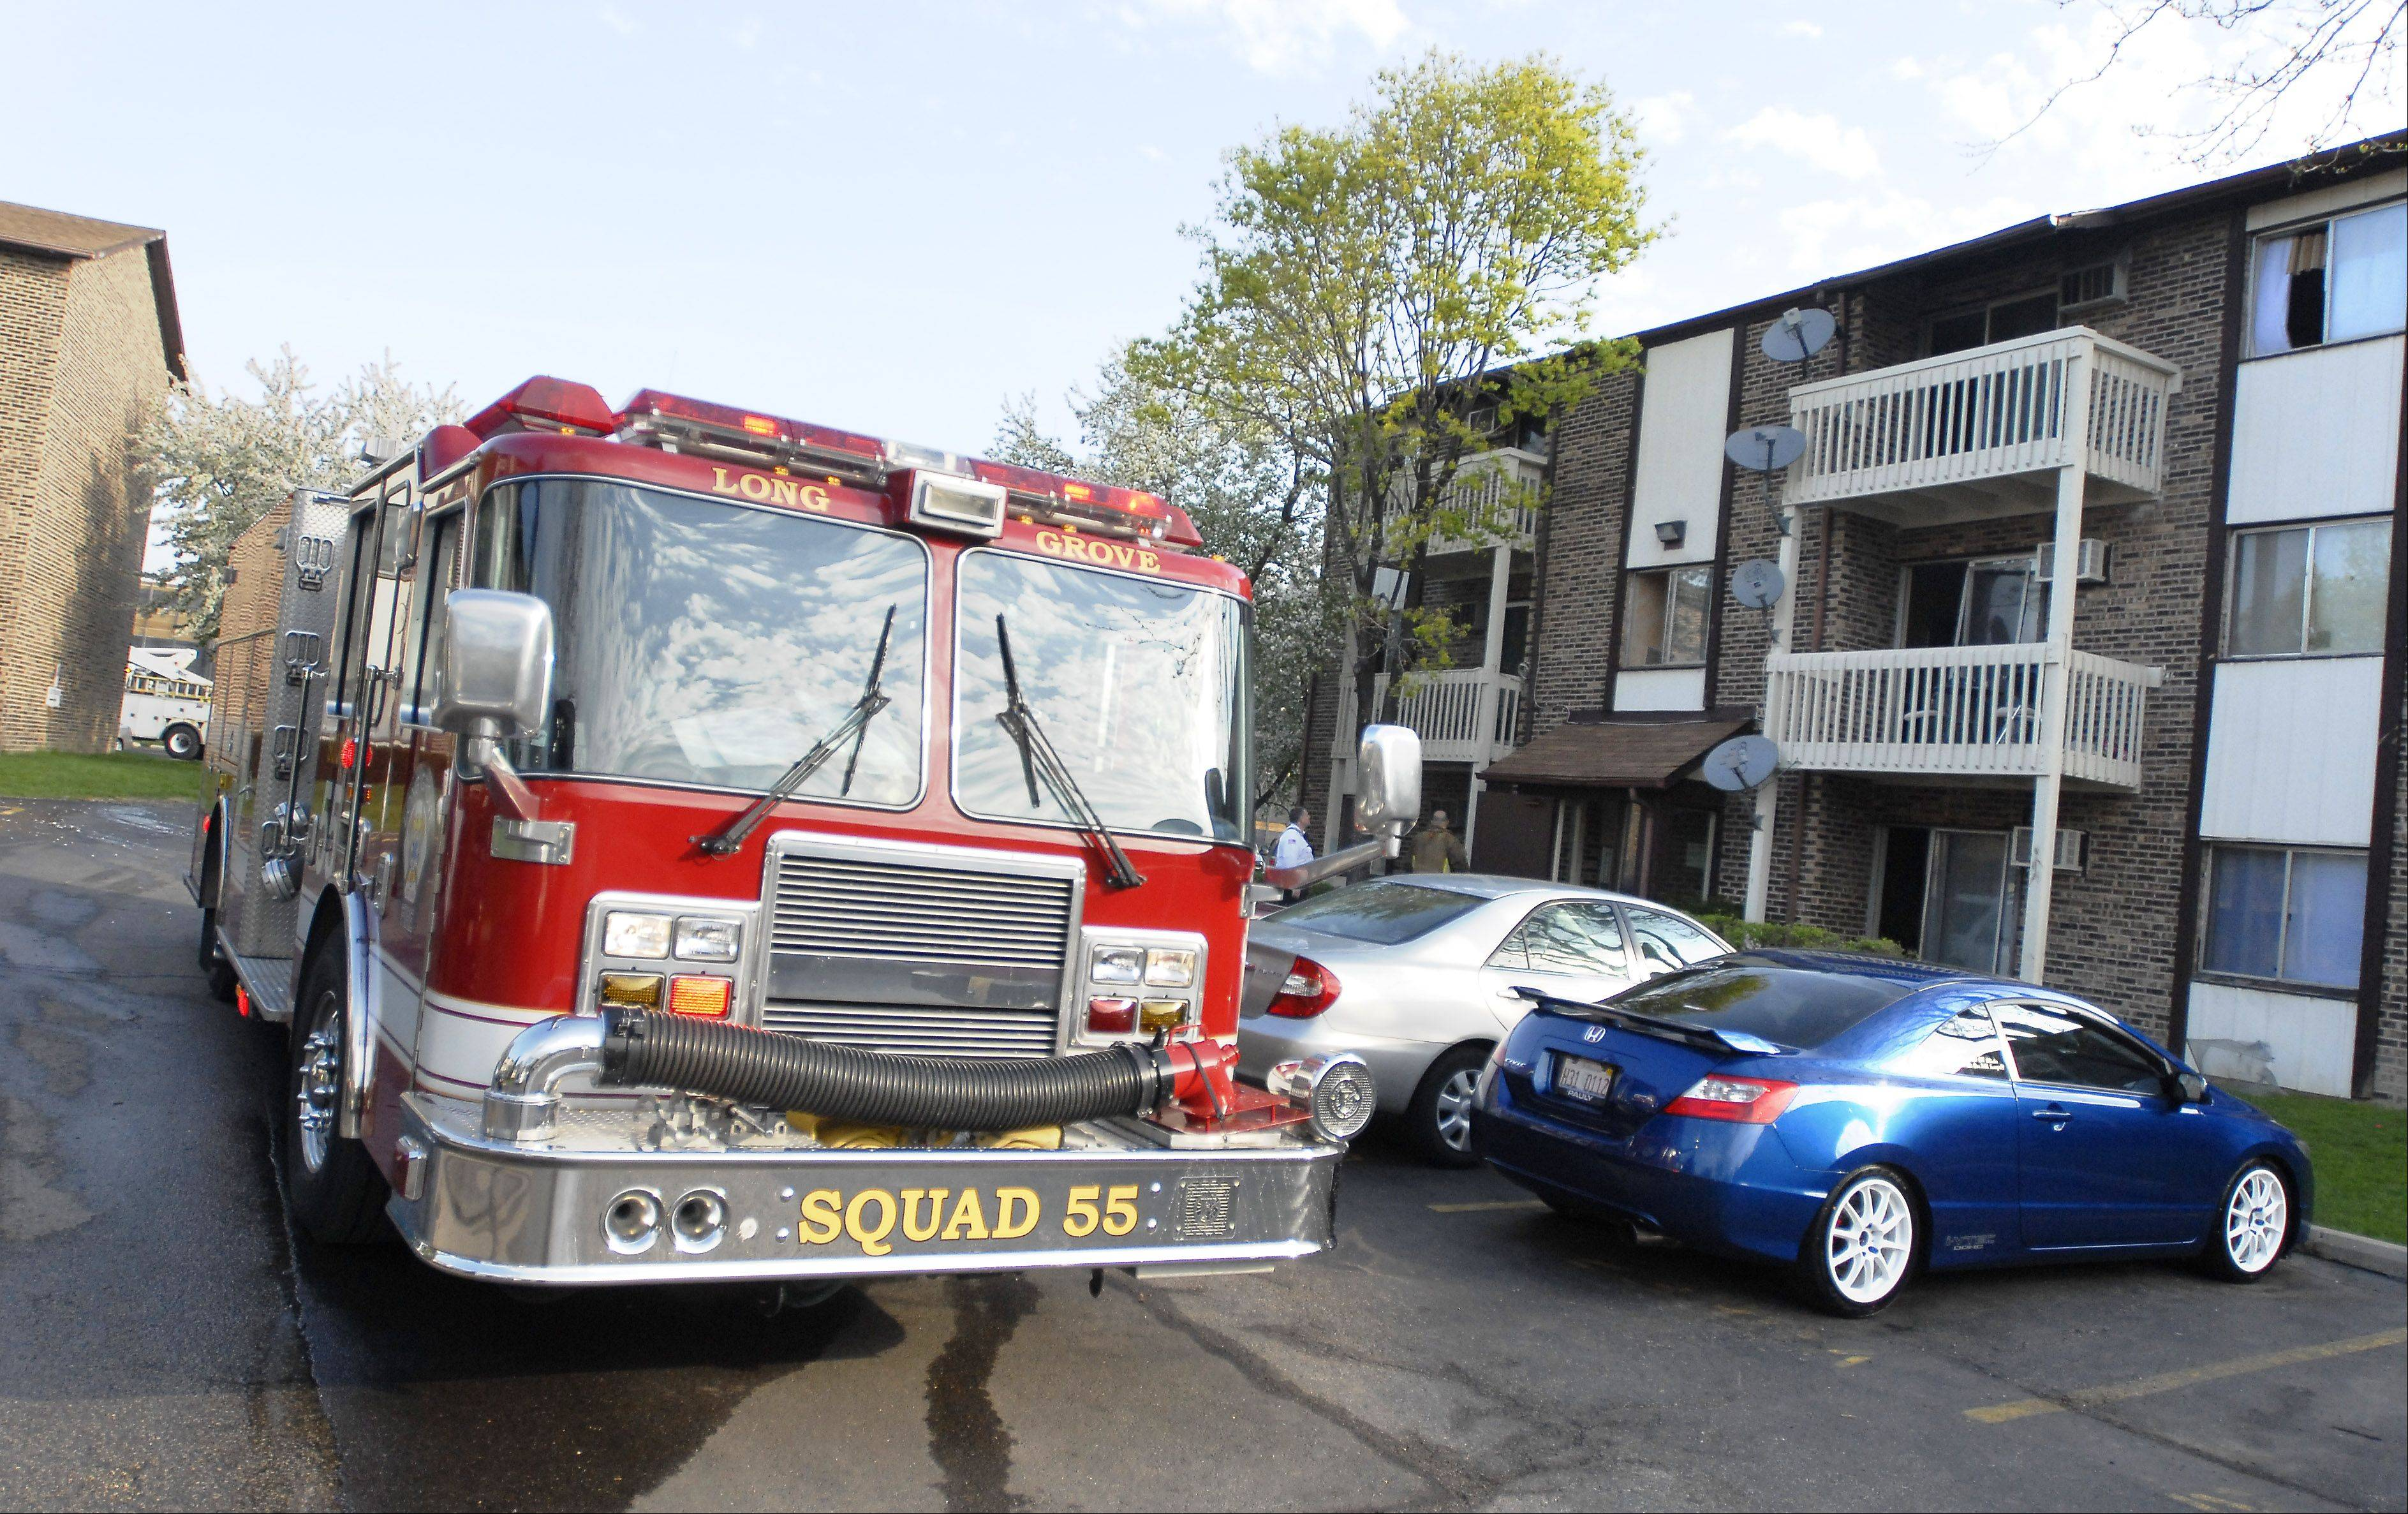 An early morning fire near Arlington Heights left 14 residents of the Country Glen apartments temporarily homeless Tuesday. Officials say the fire occurred in a utility room of a six-unit building.